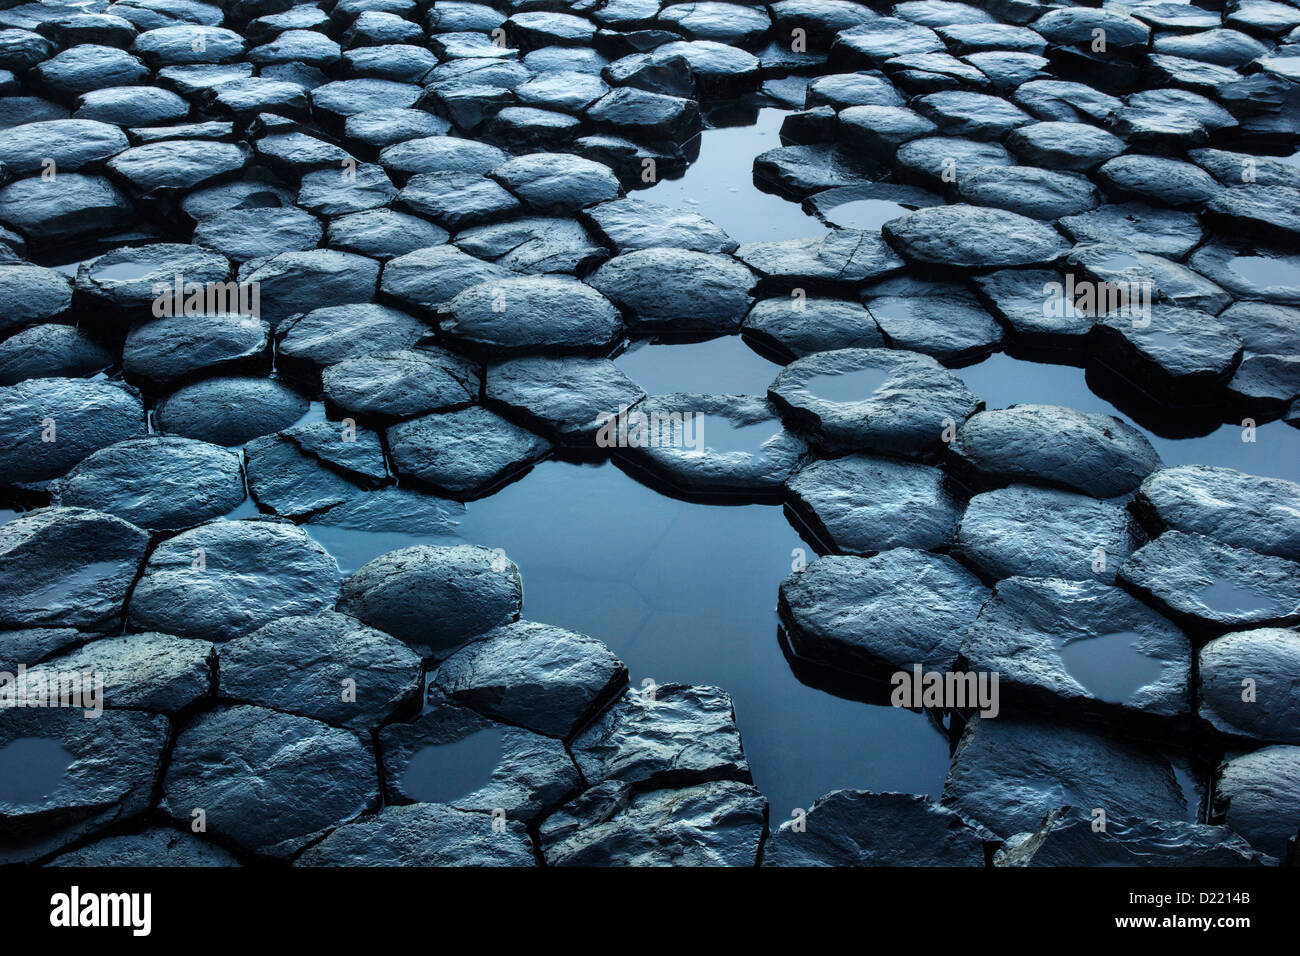 Details of the hexagonal basaltic rocks pattern from the famous Giant's Causeway UNESCO world heritage site - Stock Image